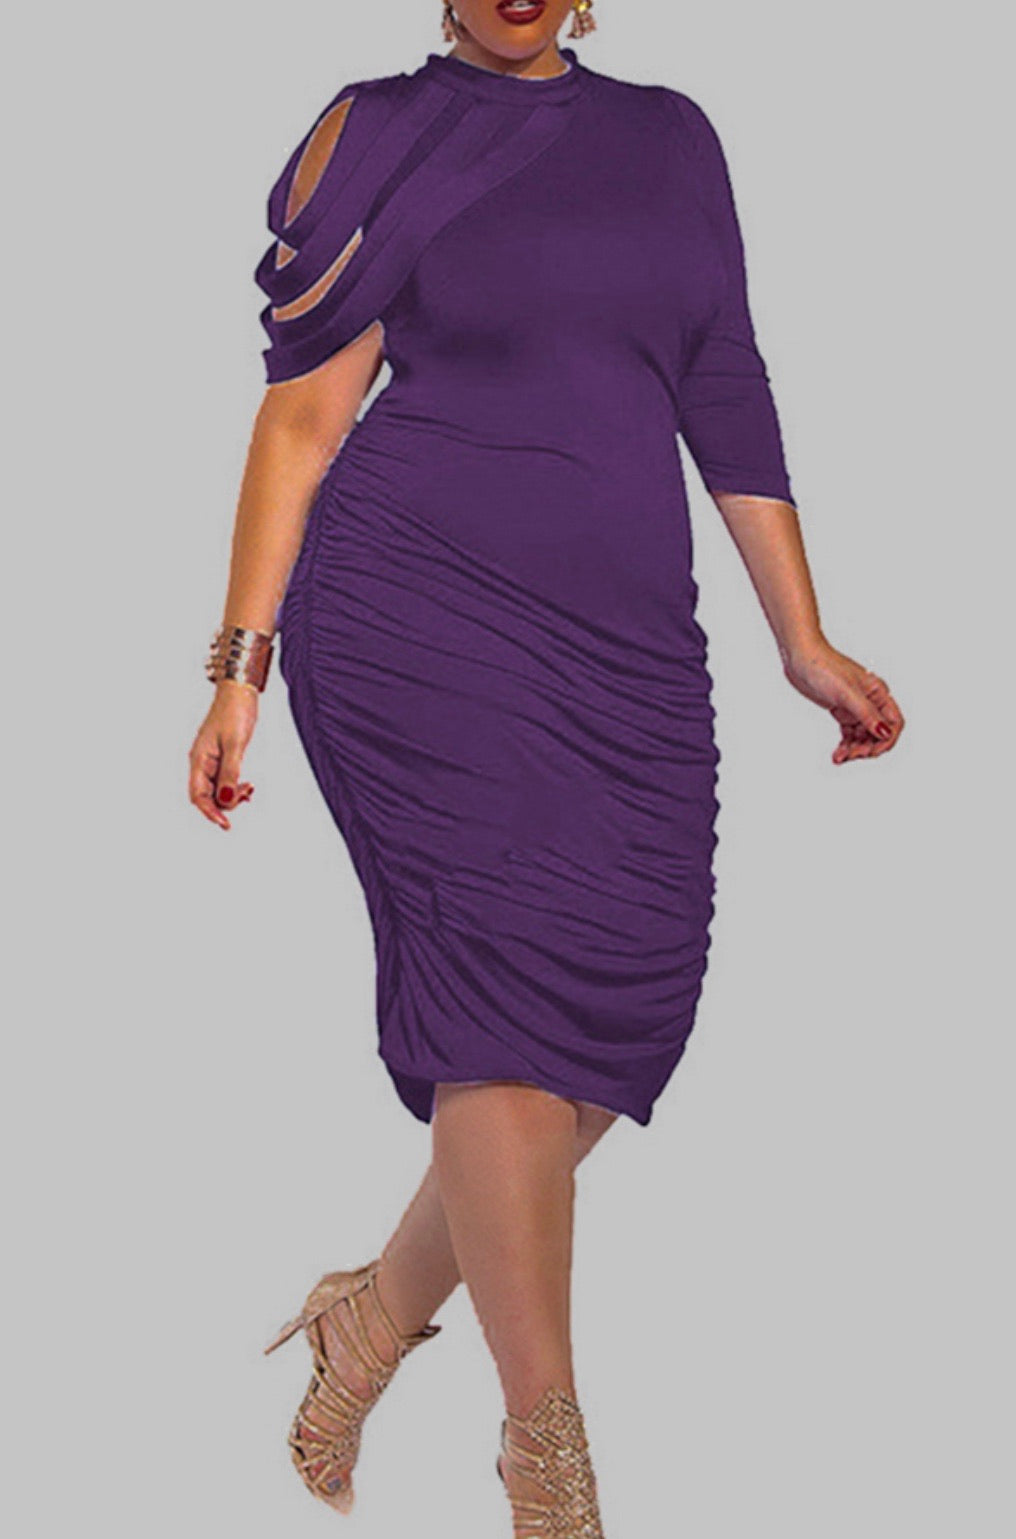 Regal Midi (Plus Size Only)